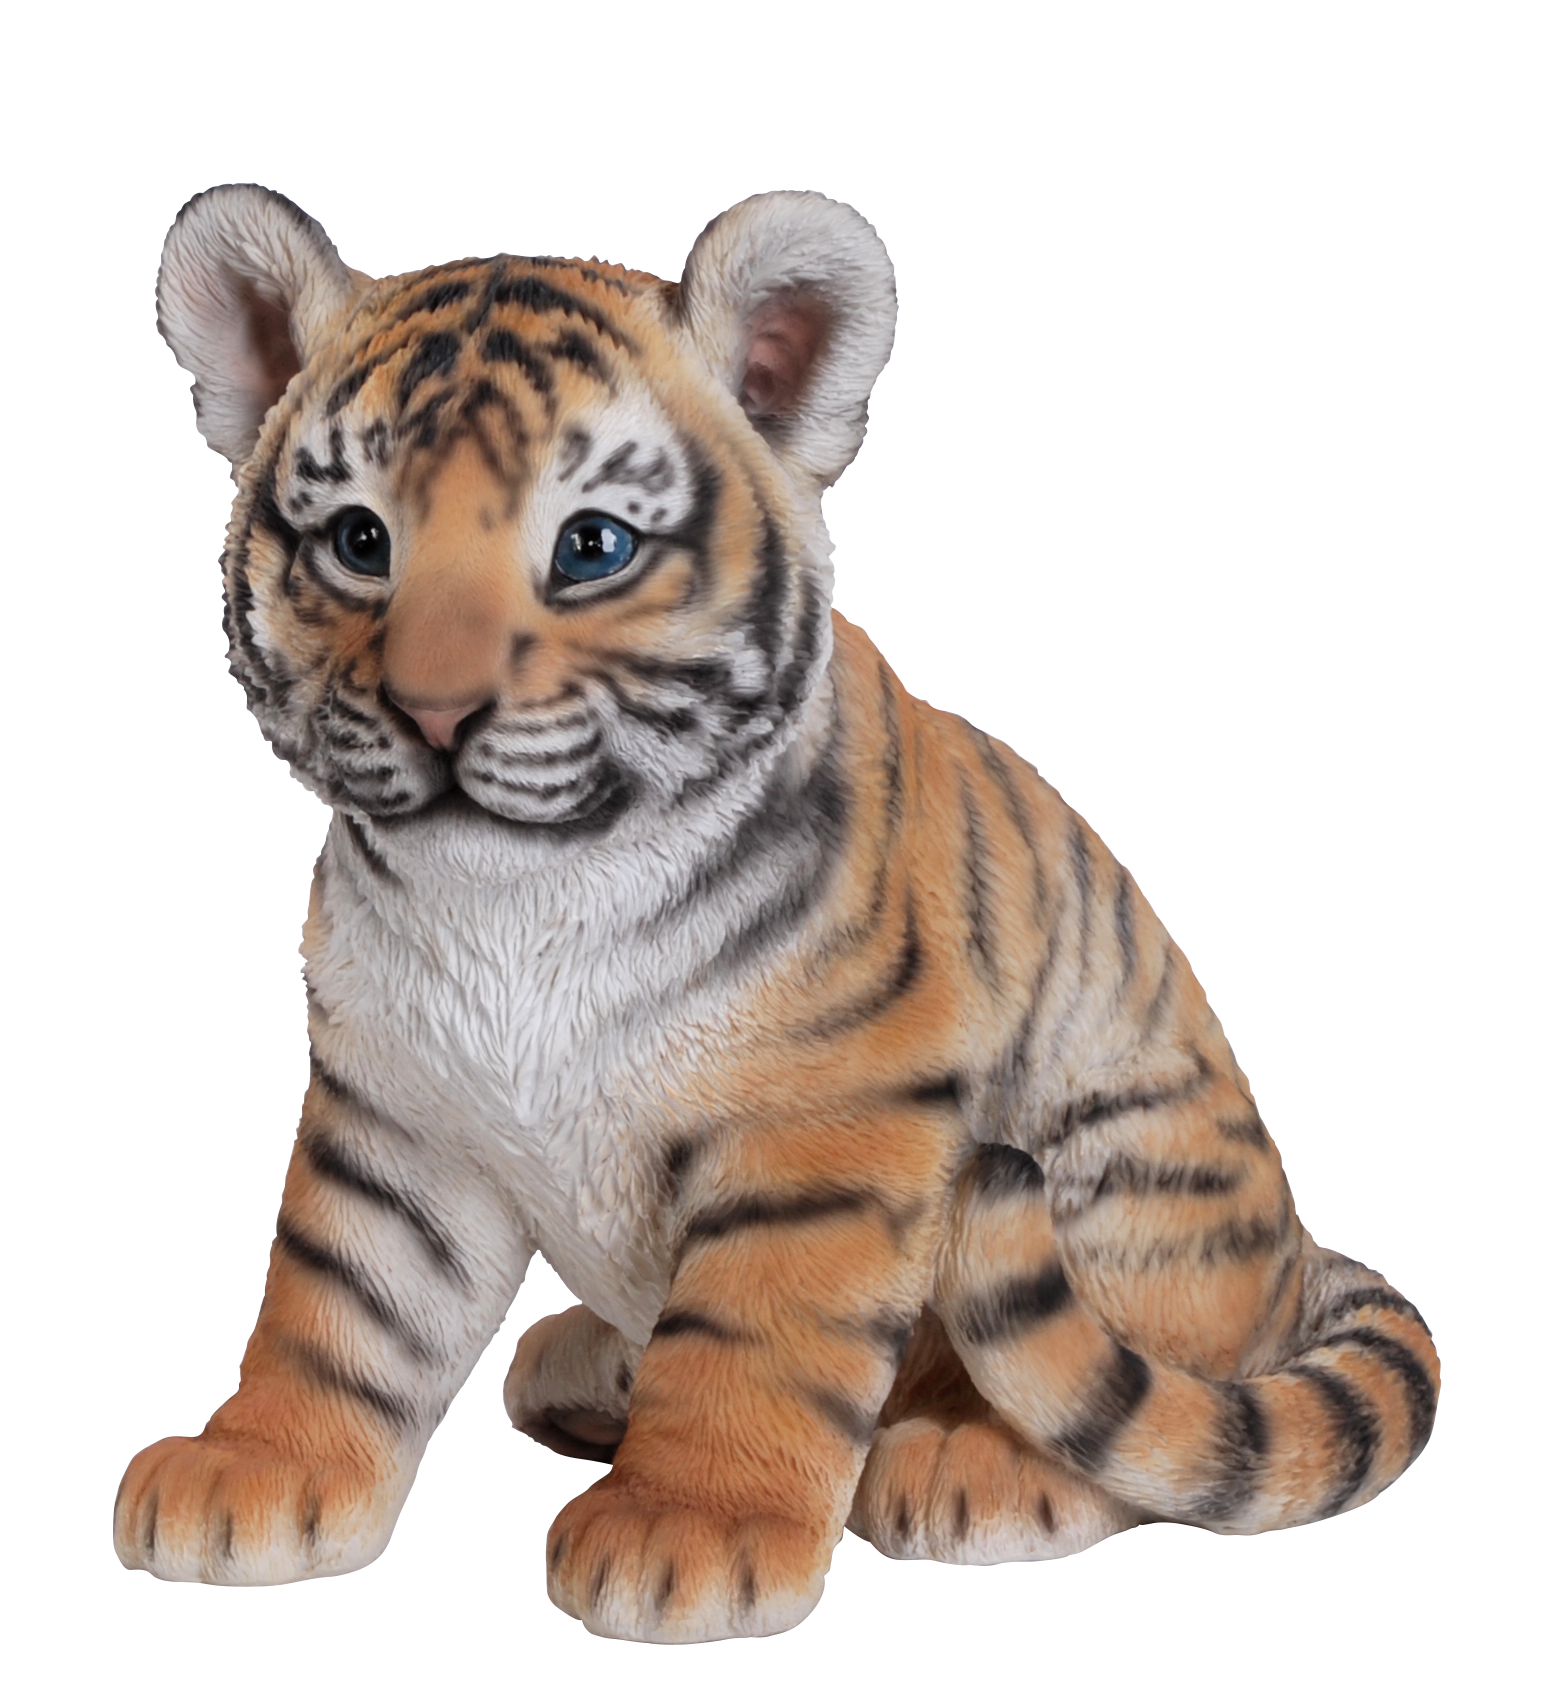 White Living Room Hd Baby Tiger Png Cub Tiger Clipart Png Free